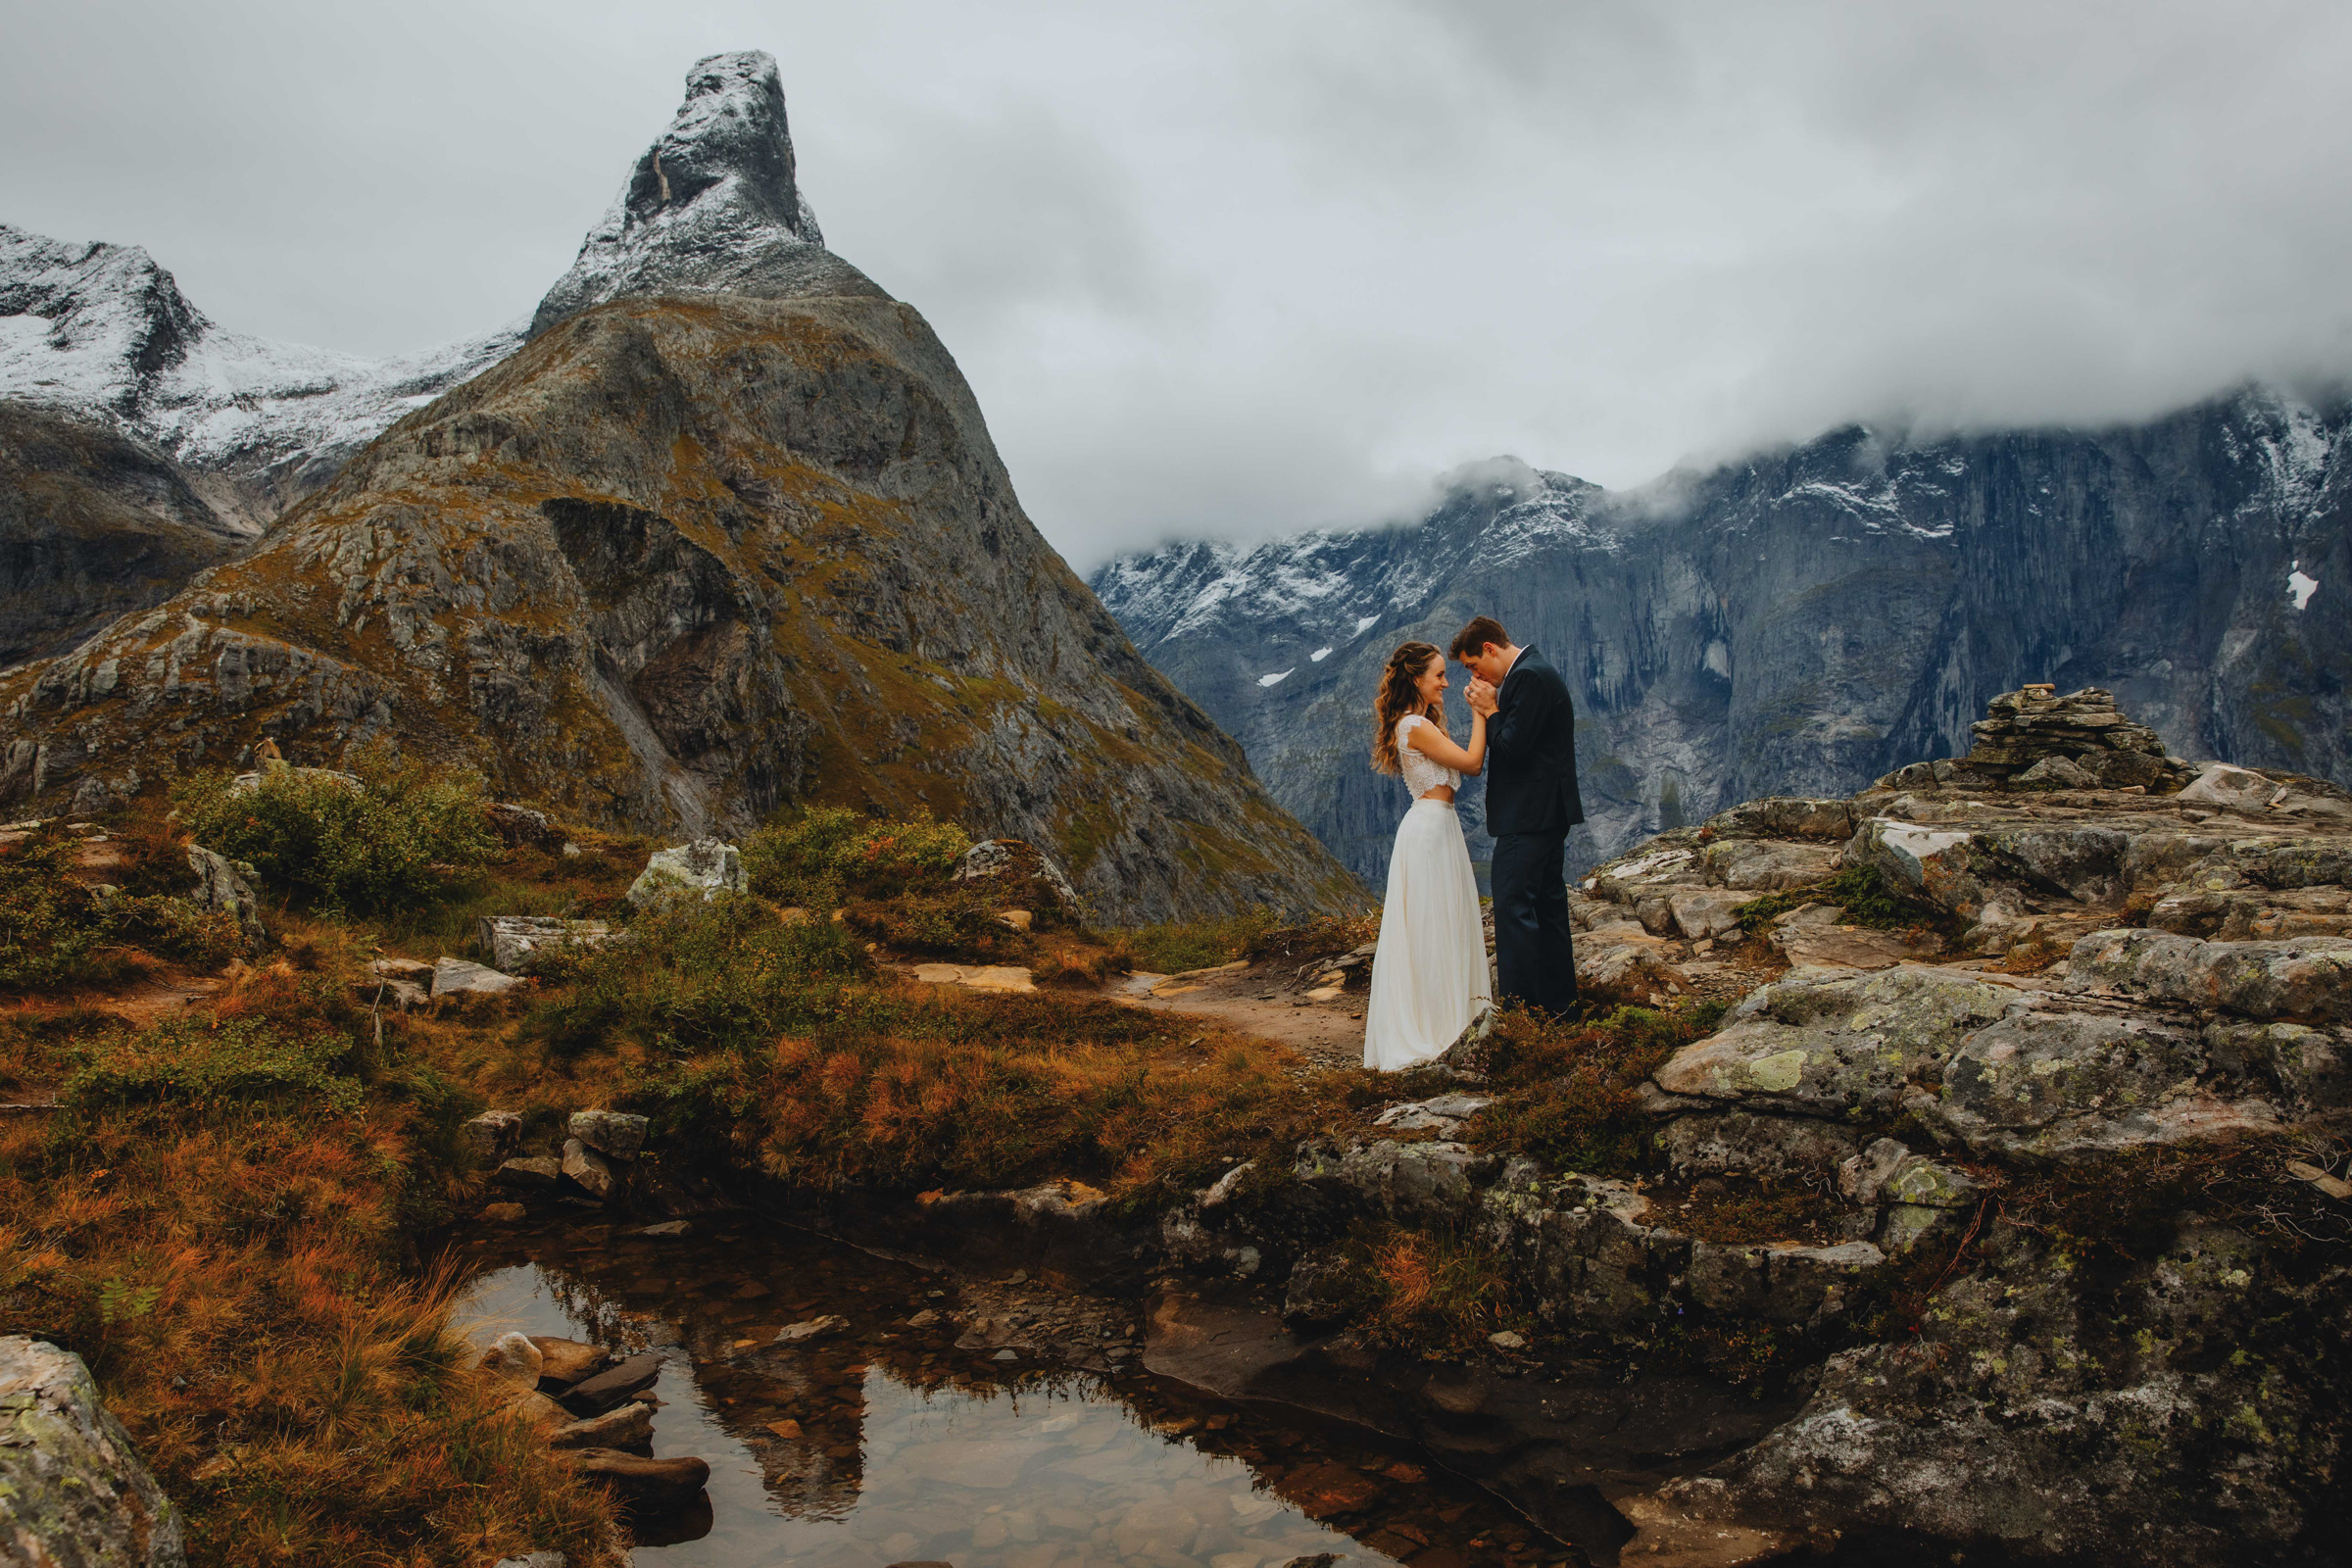 Face to face couple portrait in Norway mountains at Rauma - photo by Christin Eide Photography